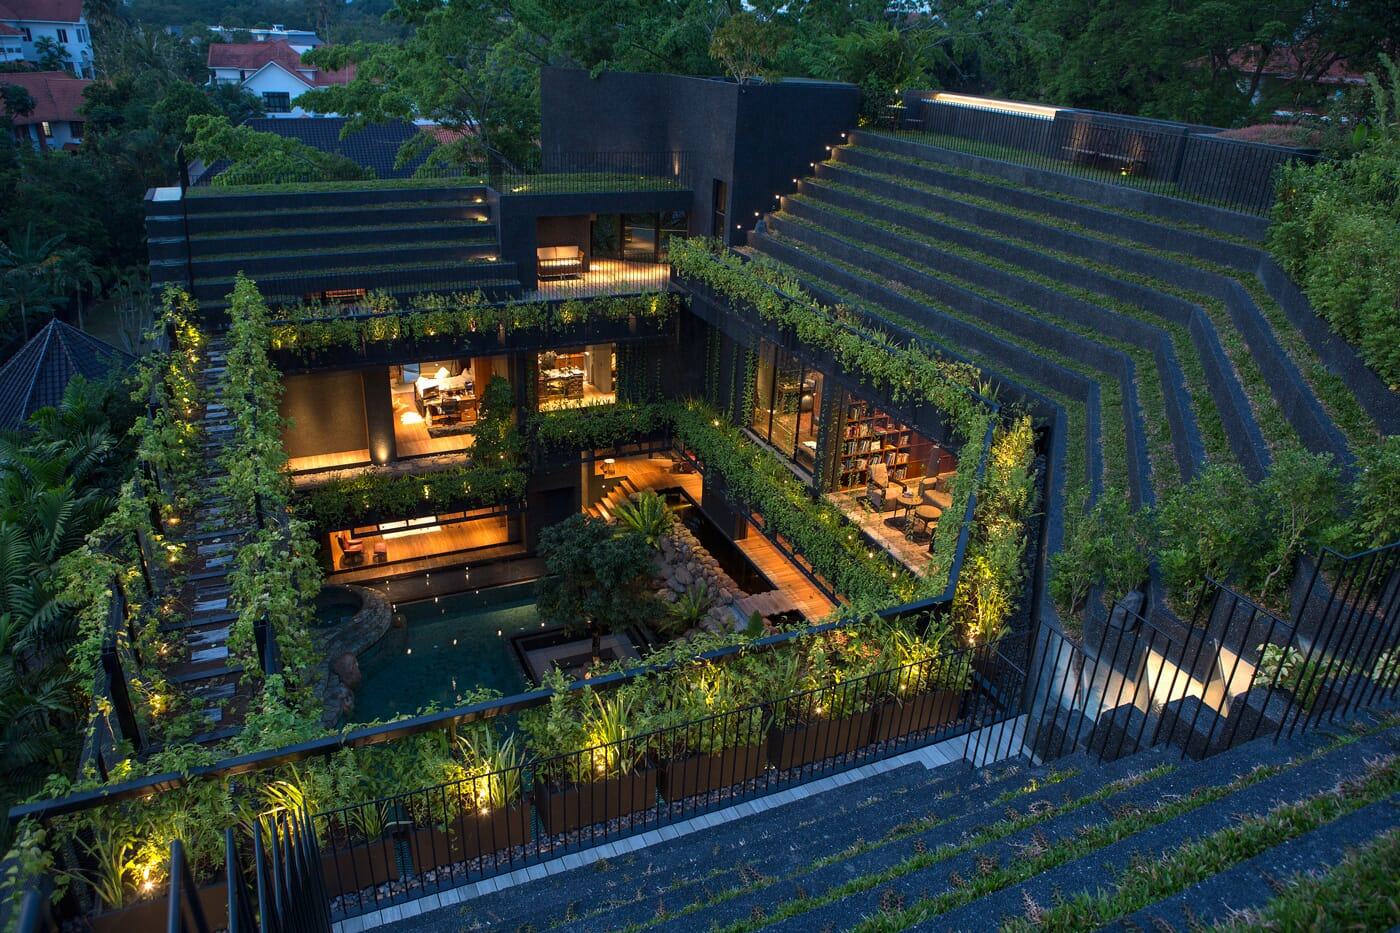 22.-View-from-roof-garden-depicts-how-e-house-steps-&-falls-with-e-terrain,-forming-an-amphitheatre-at-e-heart-of-e-plan.